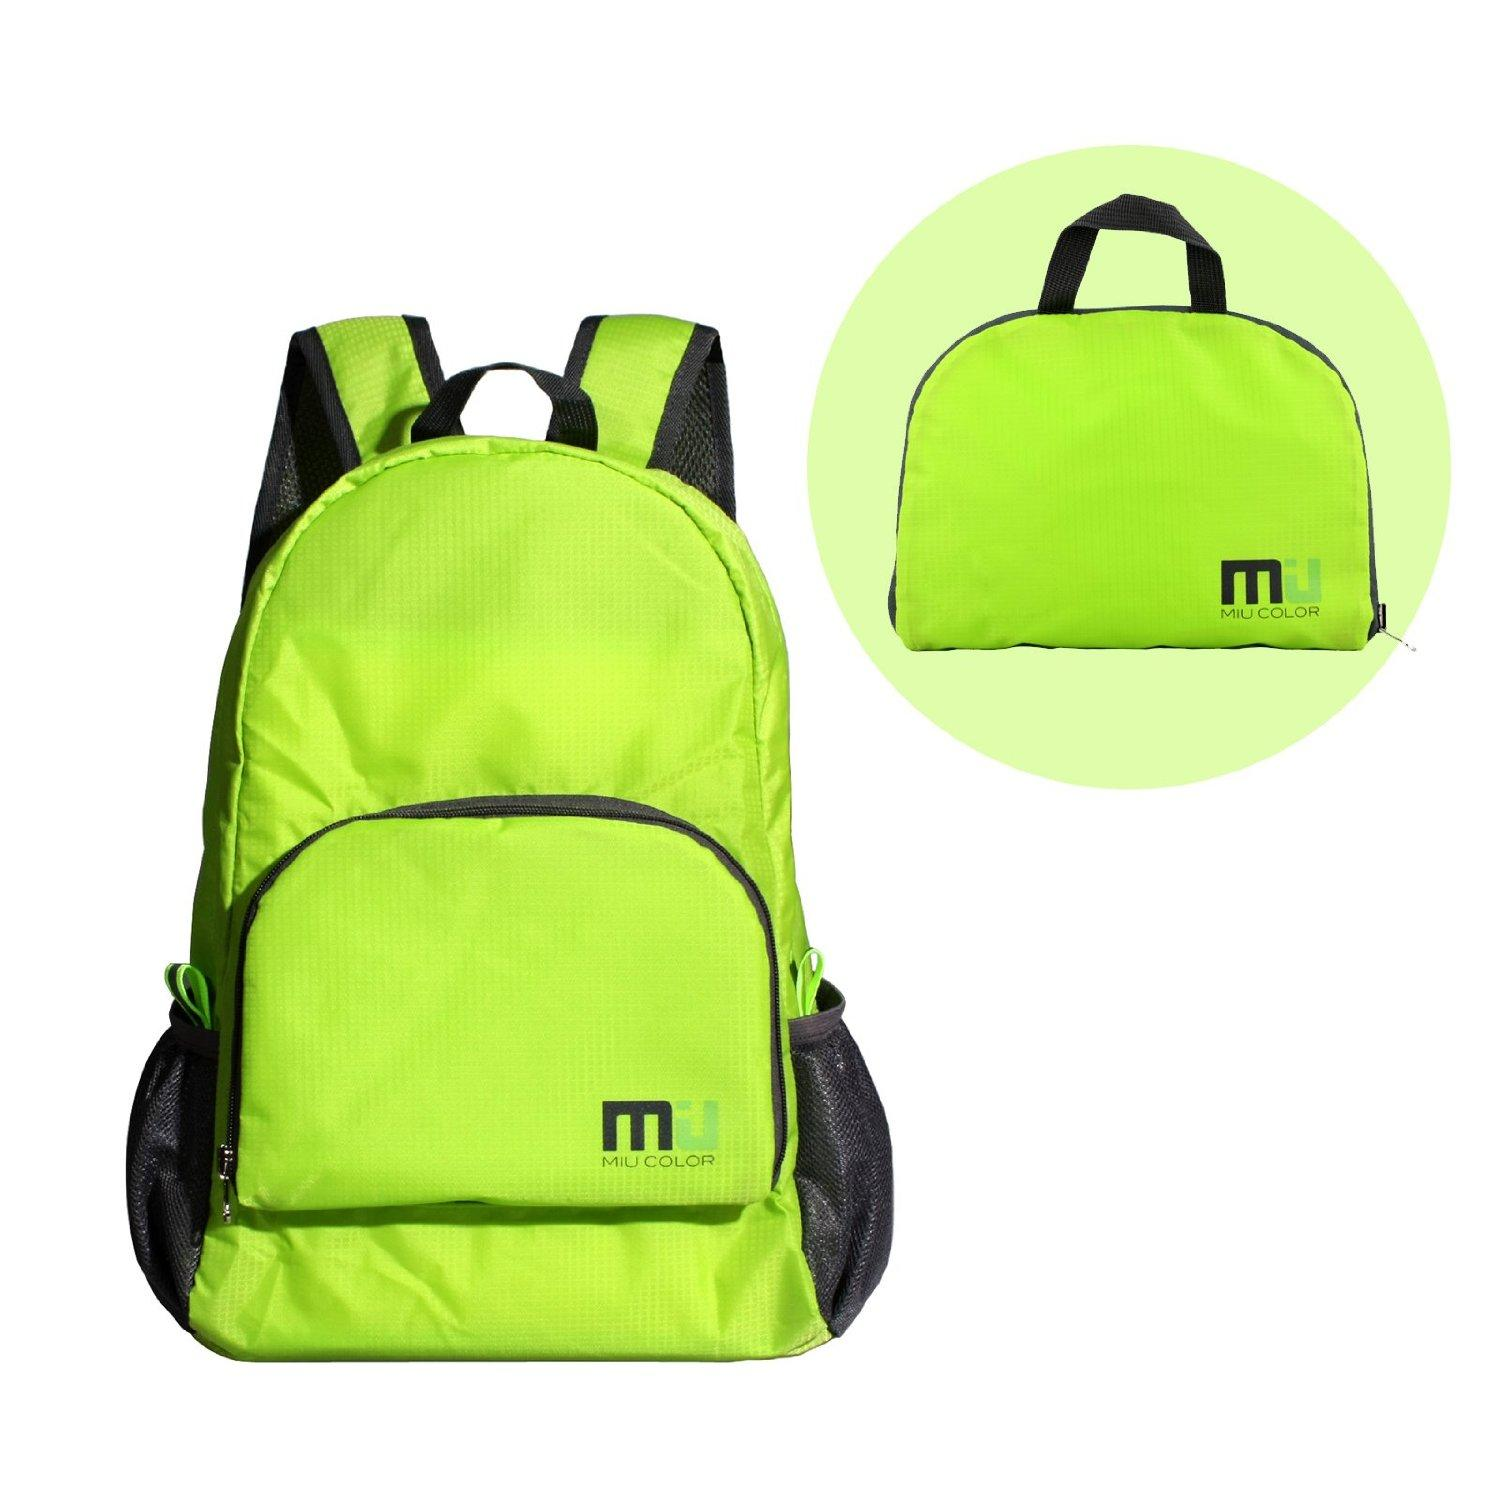 $14.99 MIU COLOR® Packable Handy Lightweight Nylon Backpack Daypack - Foldable and Water Resistant